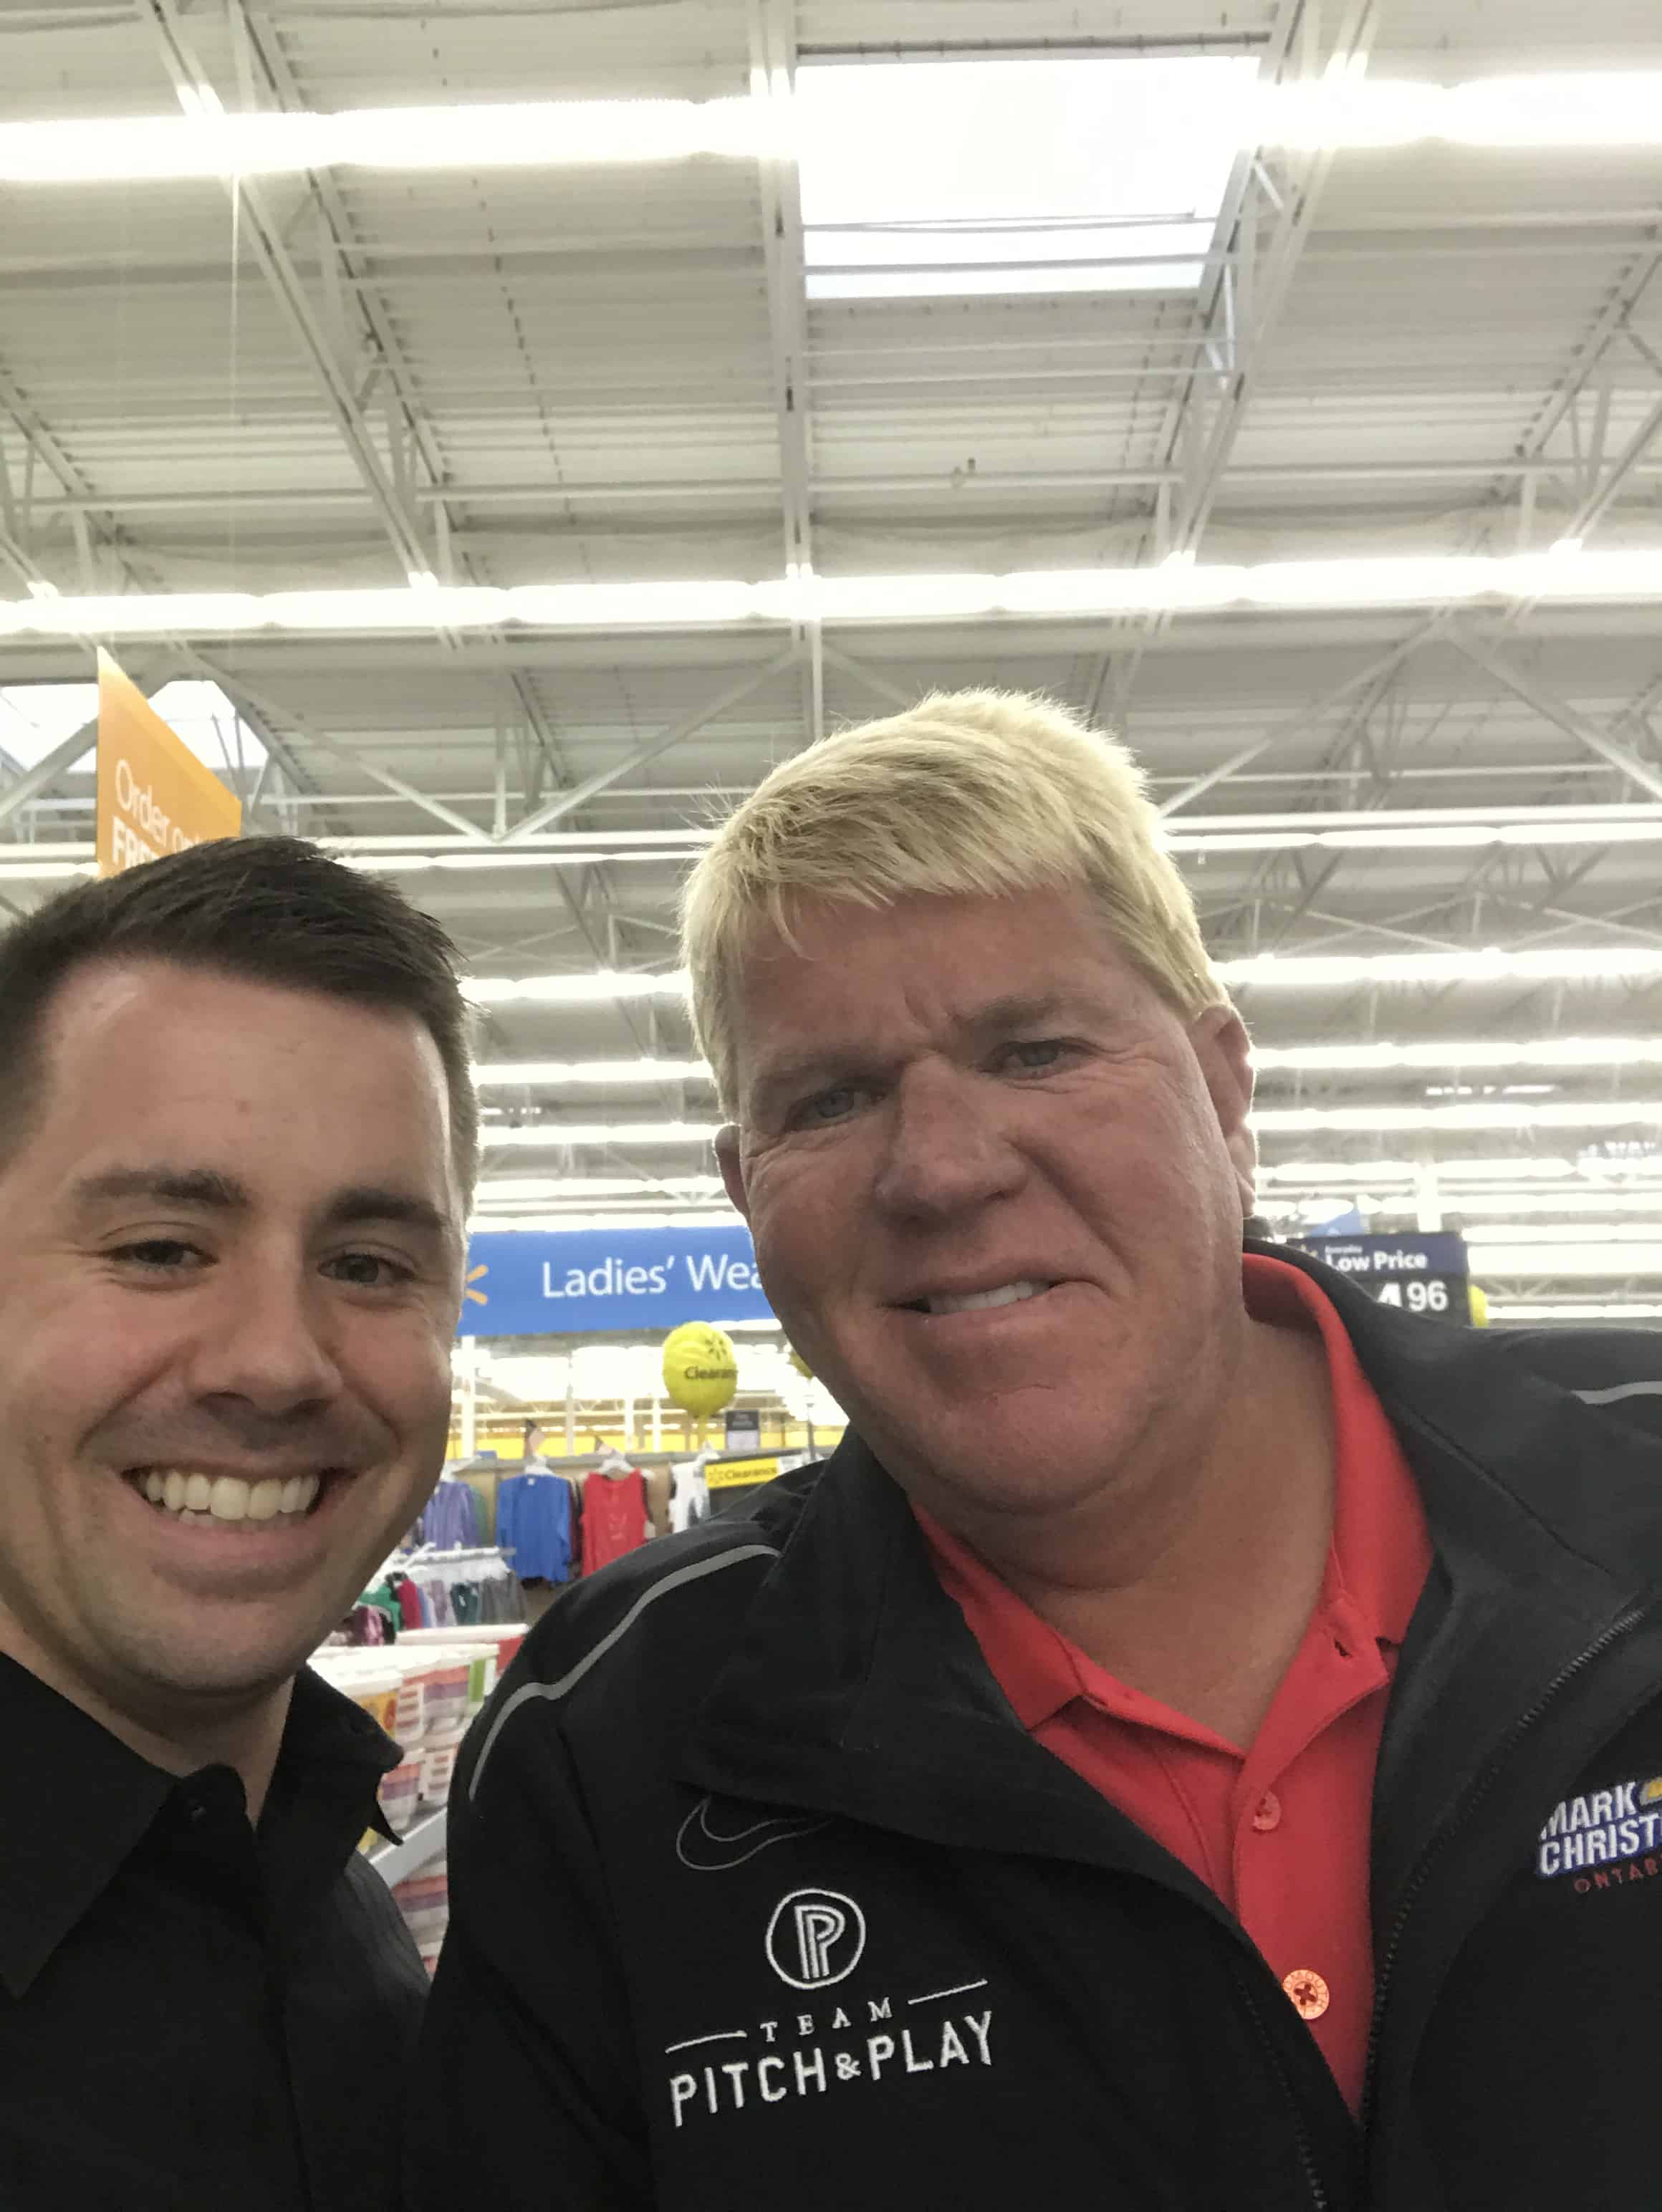 John Daly loves Walmart